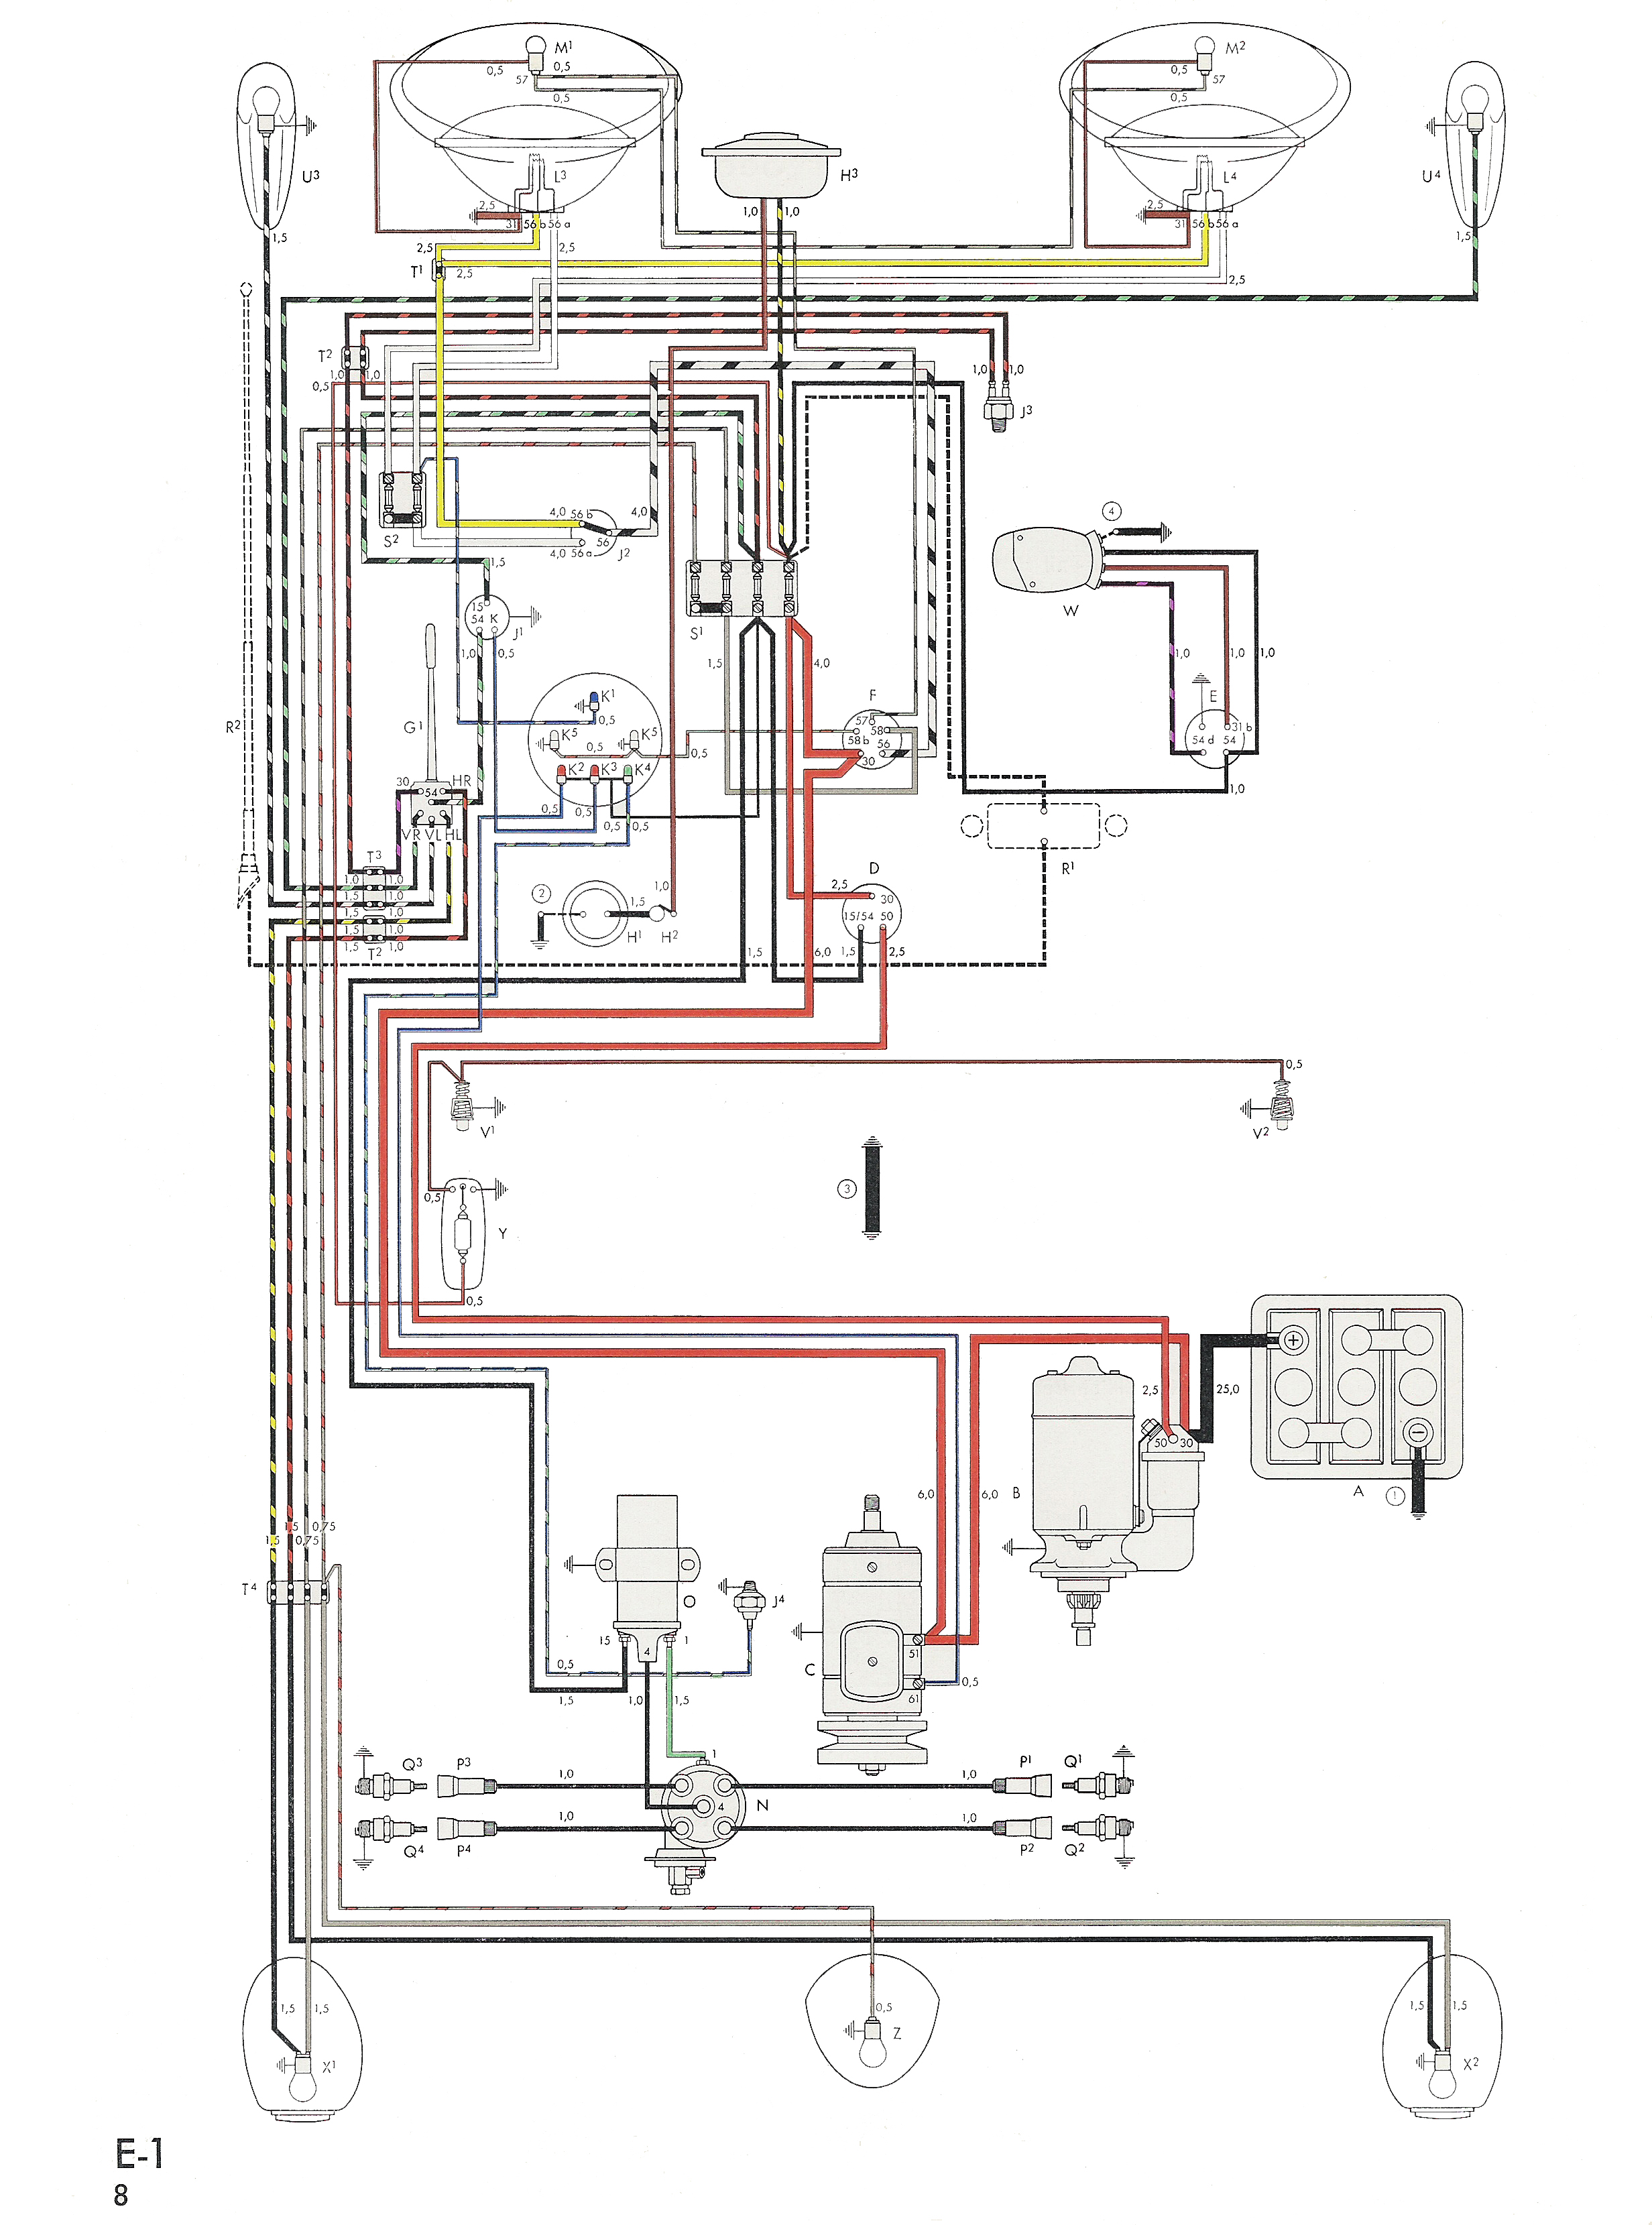 thesamba com type 1 wiring diagrams rh thesamba com Volkswagen Super Beetle Wiring Diagram 77 VW Van Wiring Diagram